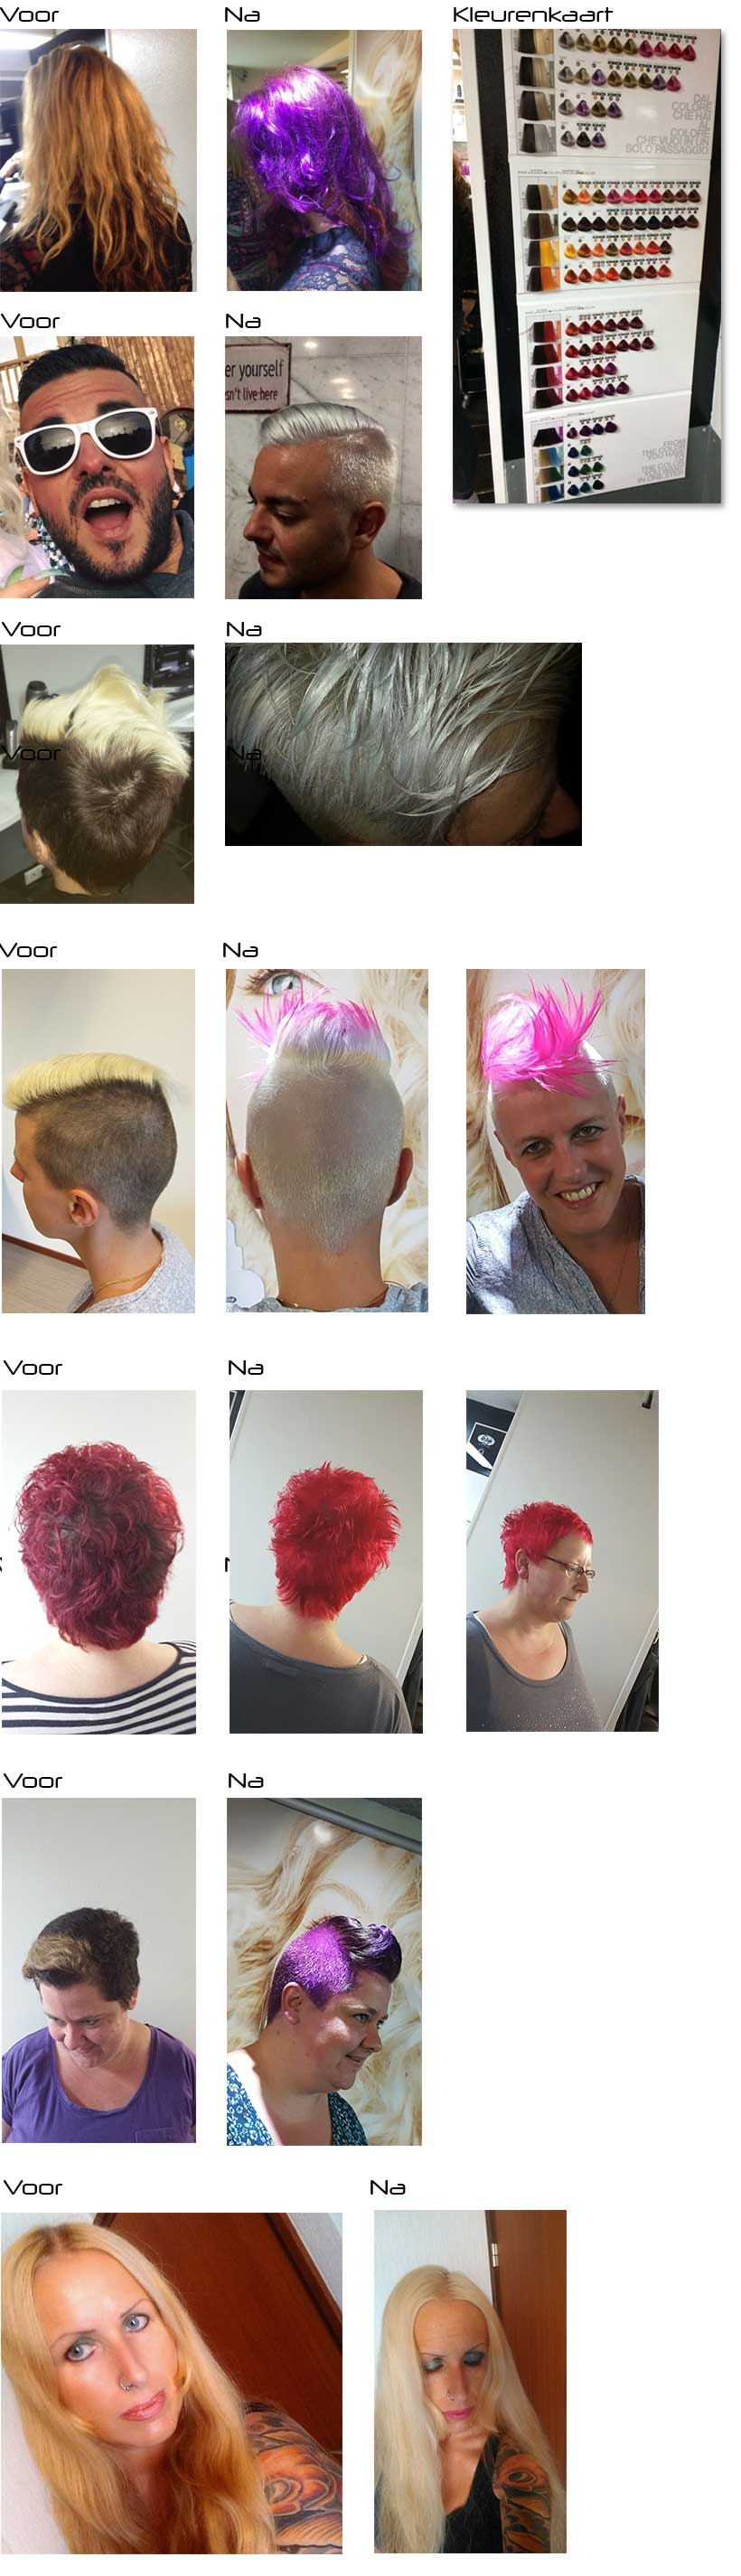 bleach and color voor na